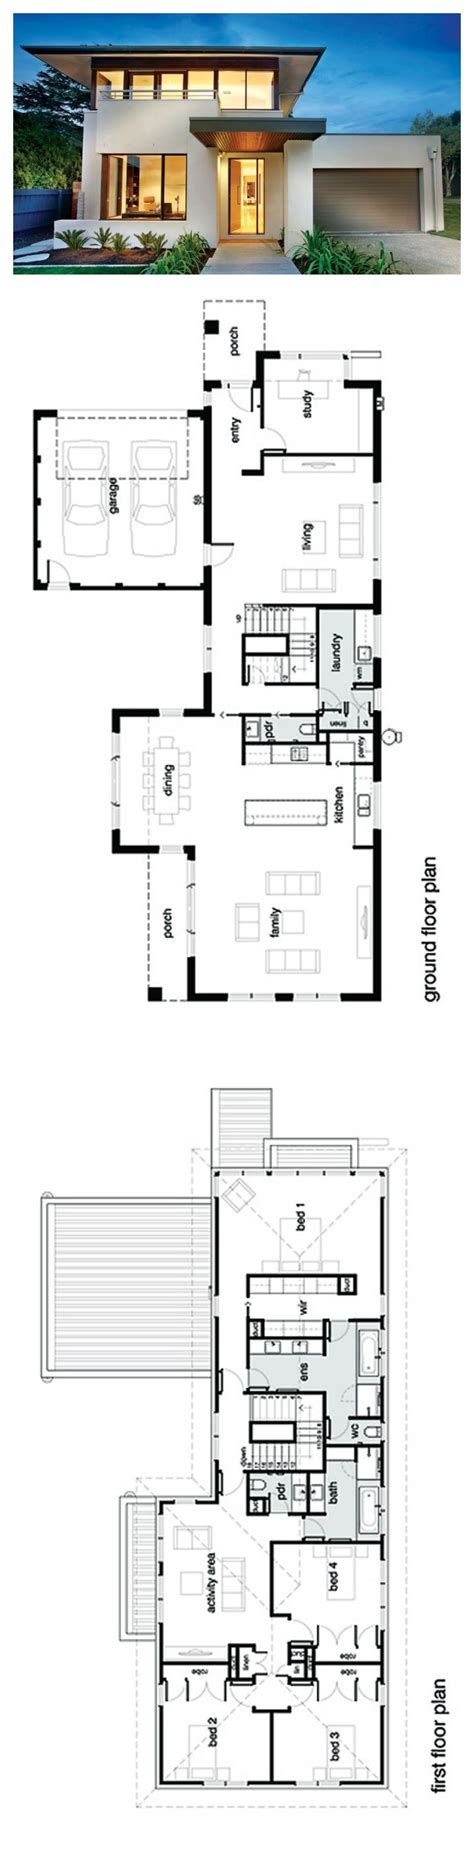 House Plans Modern | best 25 modern house plans ideas on pinterest